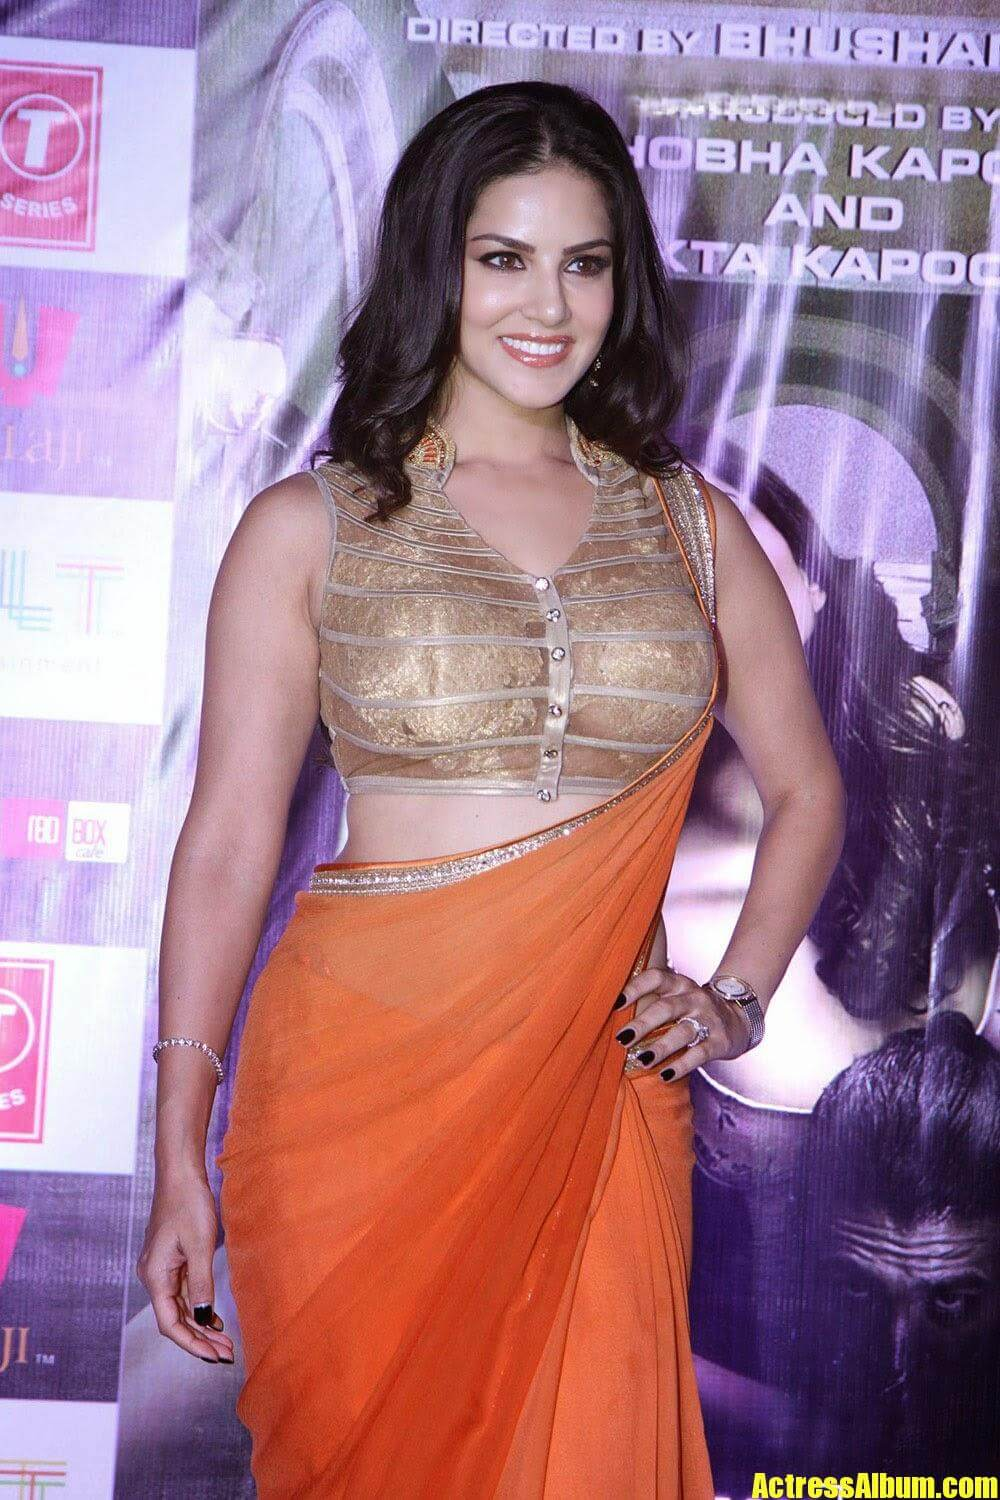 Bollywood Hot Sunny Leone At Ragini Mms 2 Success Press Conference - Actress Album-6557